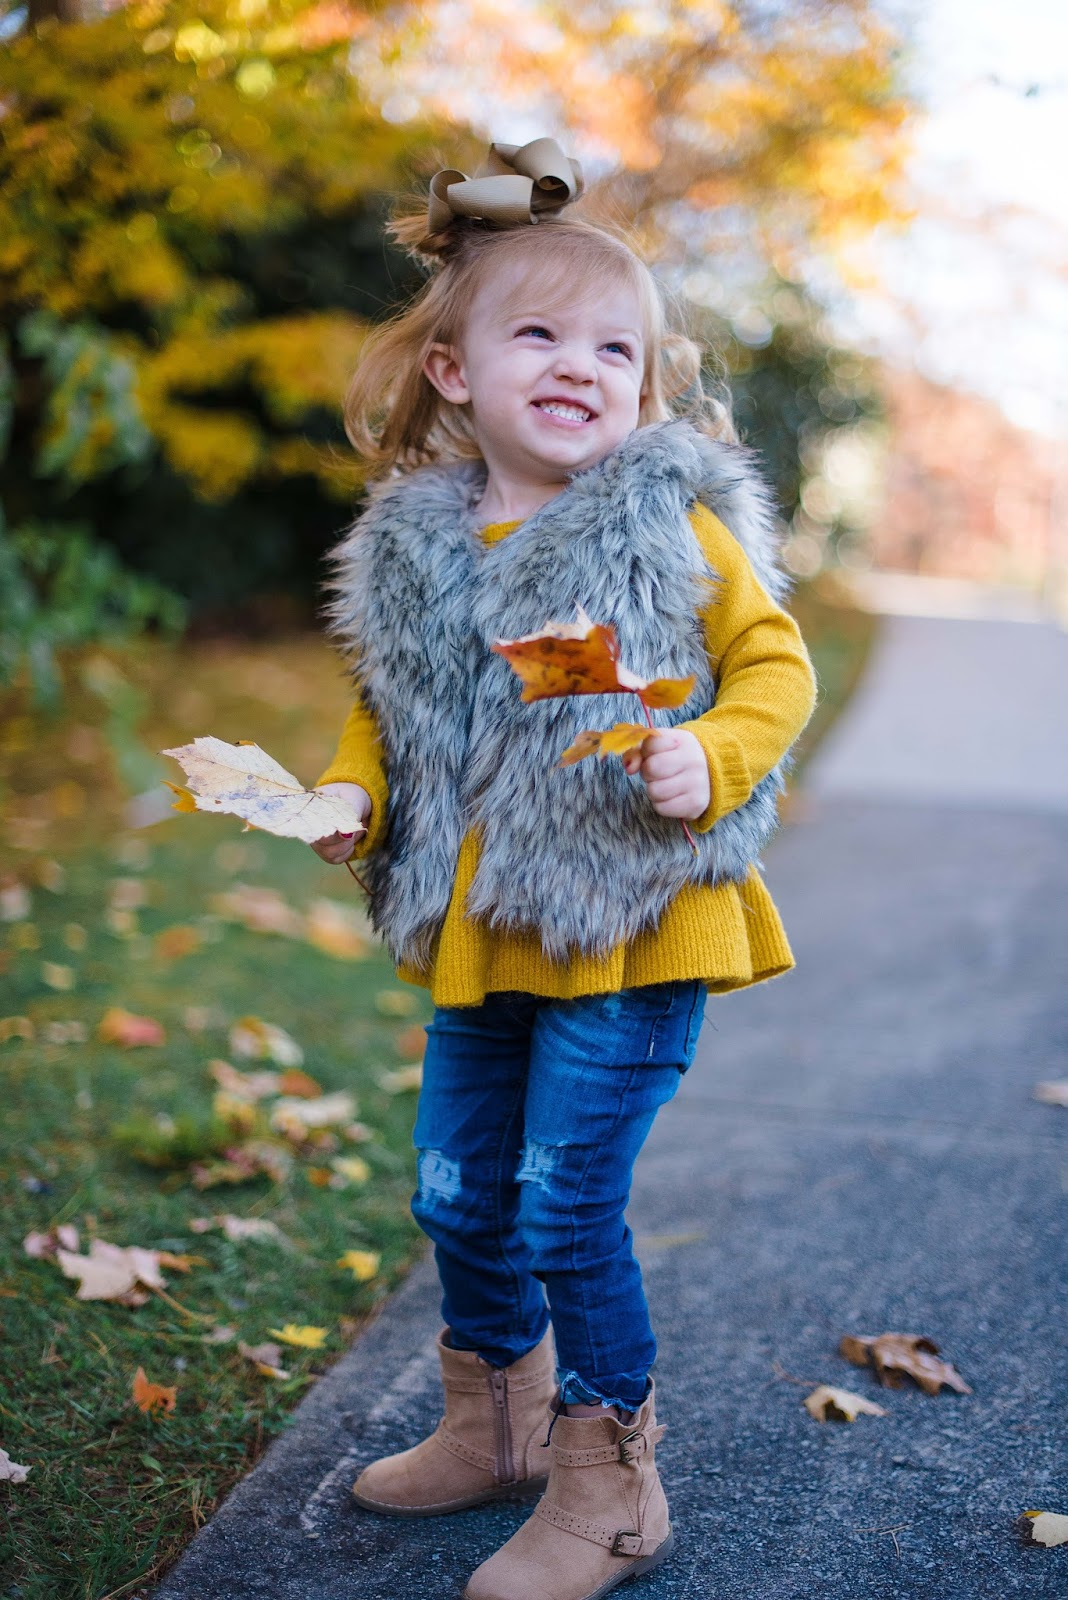 Toddler Fashion: Mustard Yellow & Faux Fur - Something Delightful Blog